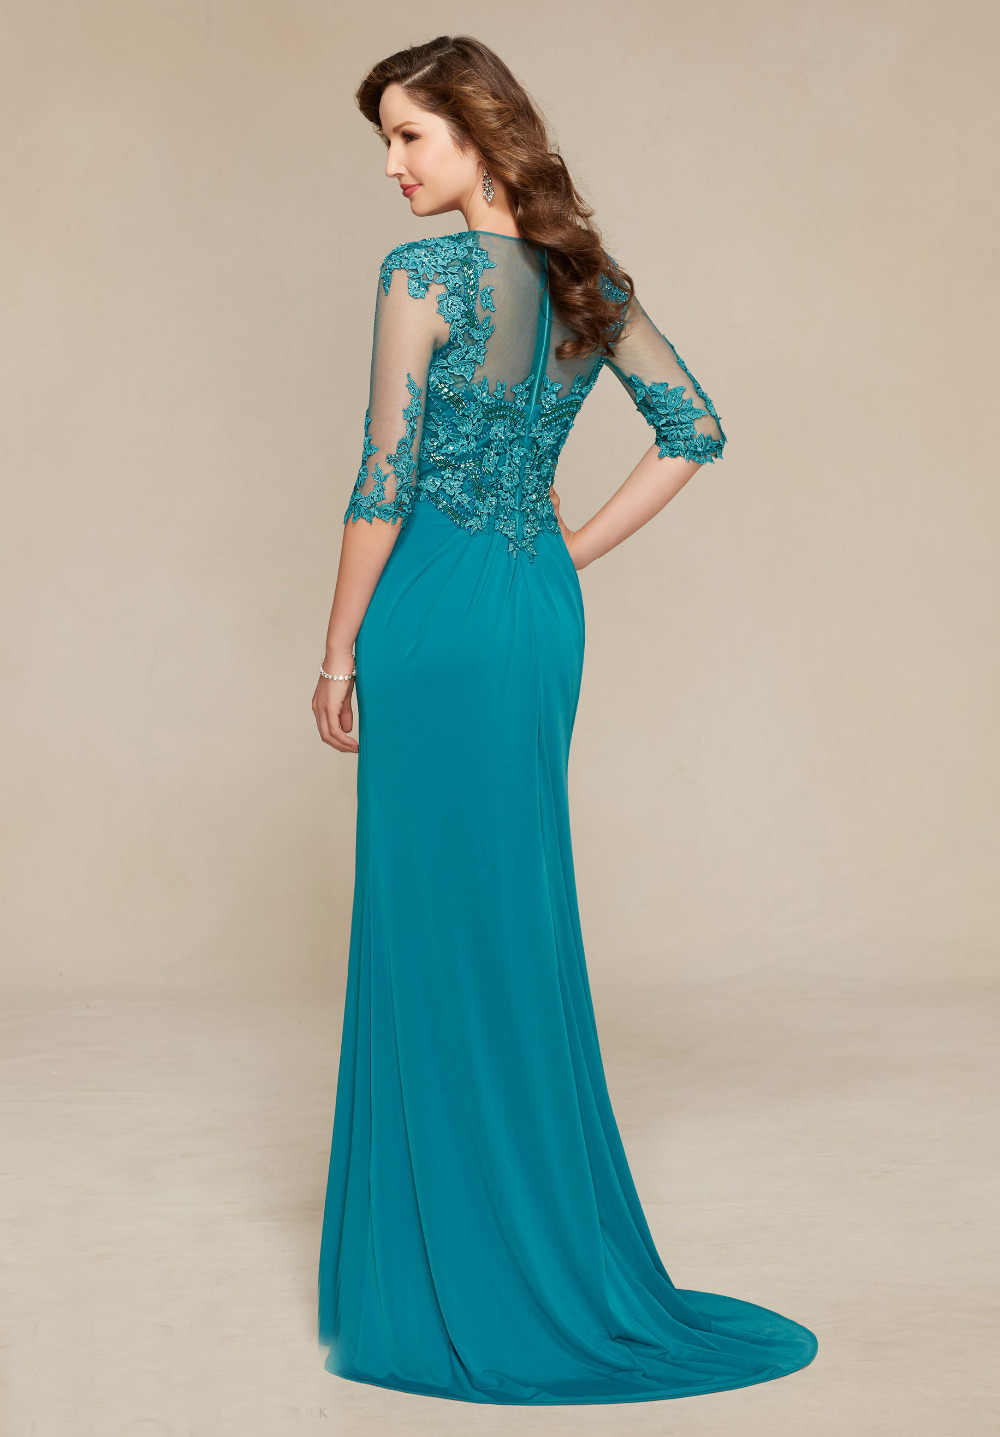 ... Mother Of The Bride Dress 2017 Lace Beaded for Weddings Half Sleeves  Groom Godmother Dresses Formal ... 260fe1ca074e